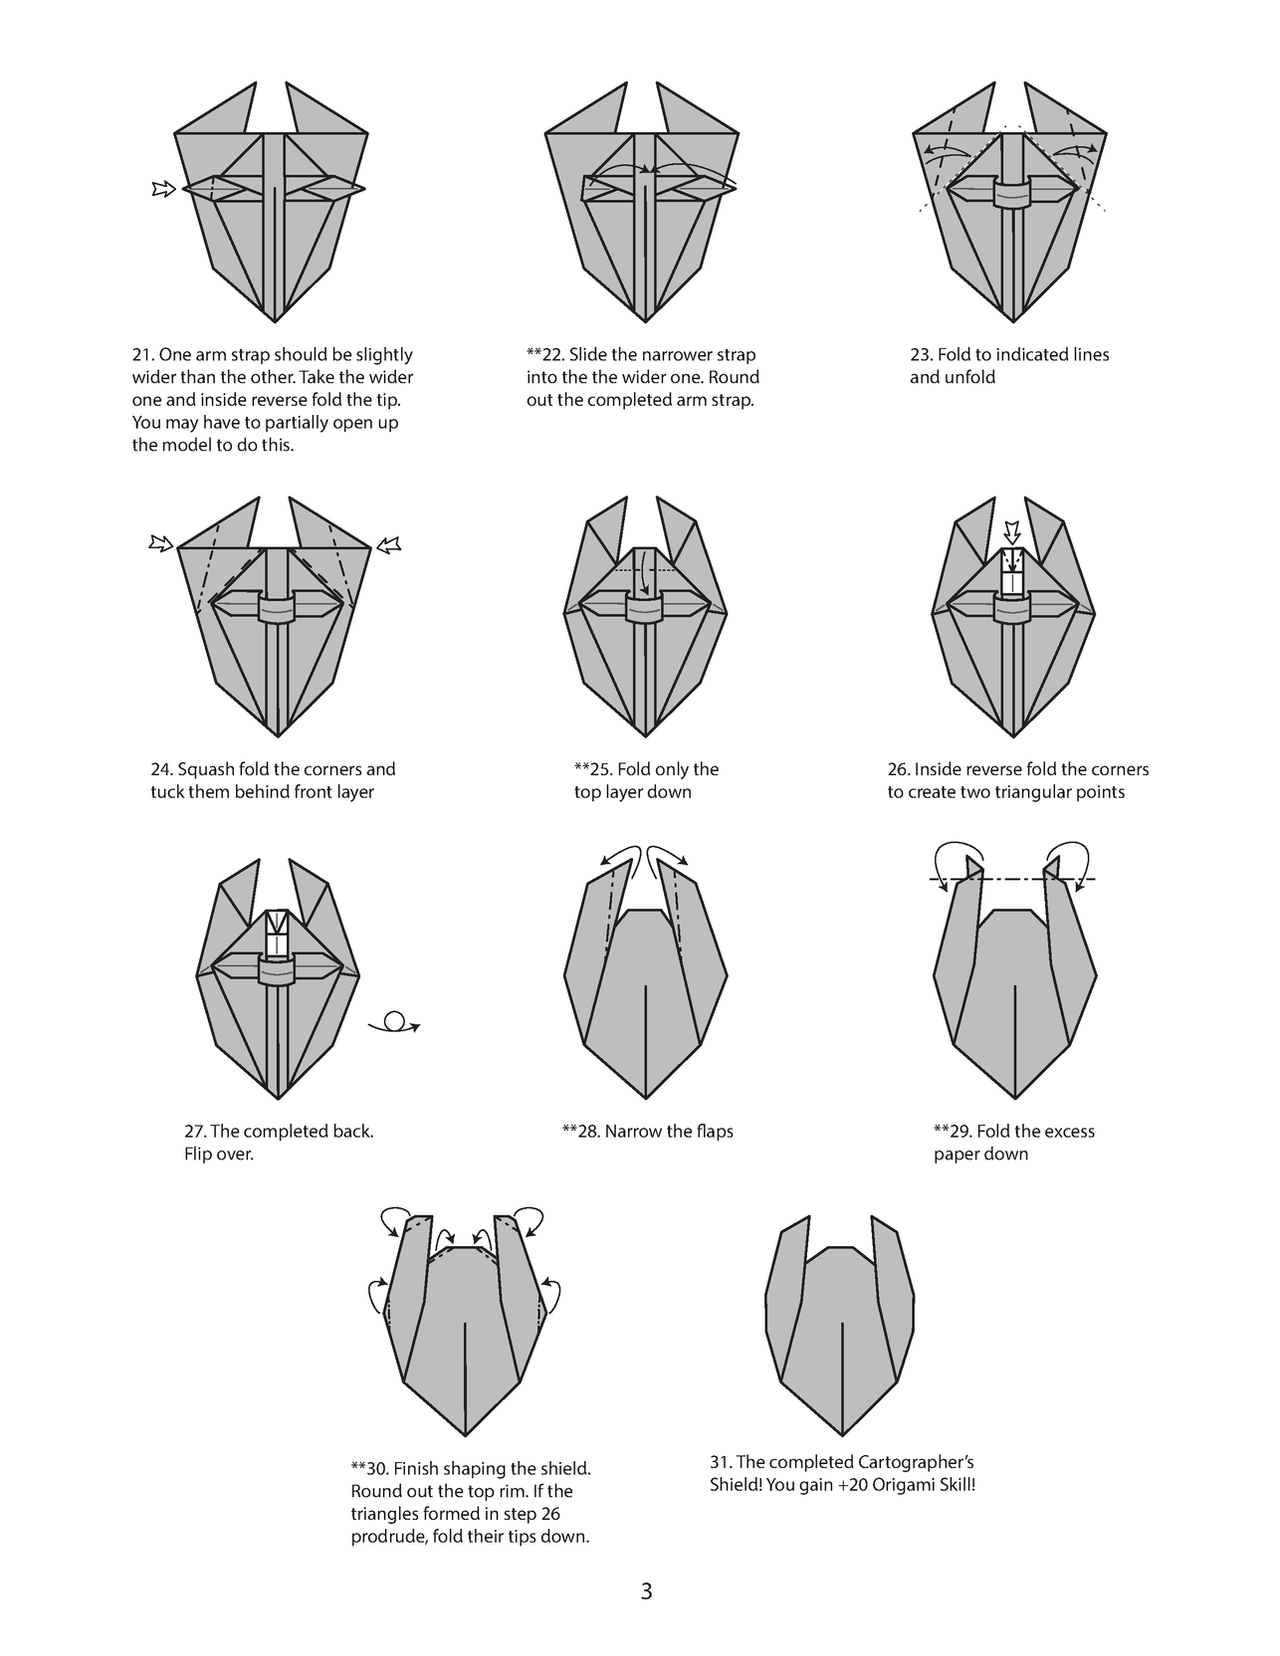 Origami cartographers shield diagram page 3 by houndread on origami cartographers shield diagram page 3 by houndread jeuxipadfo Choice Image